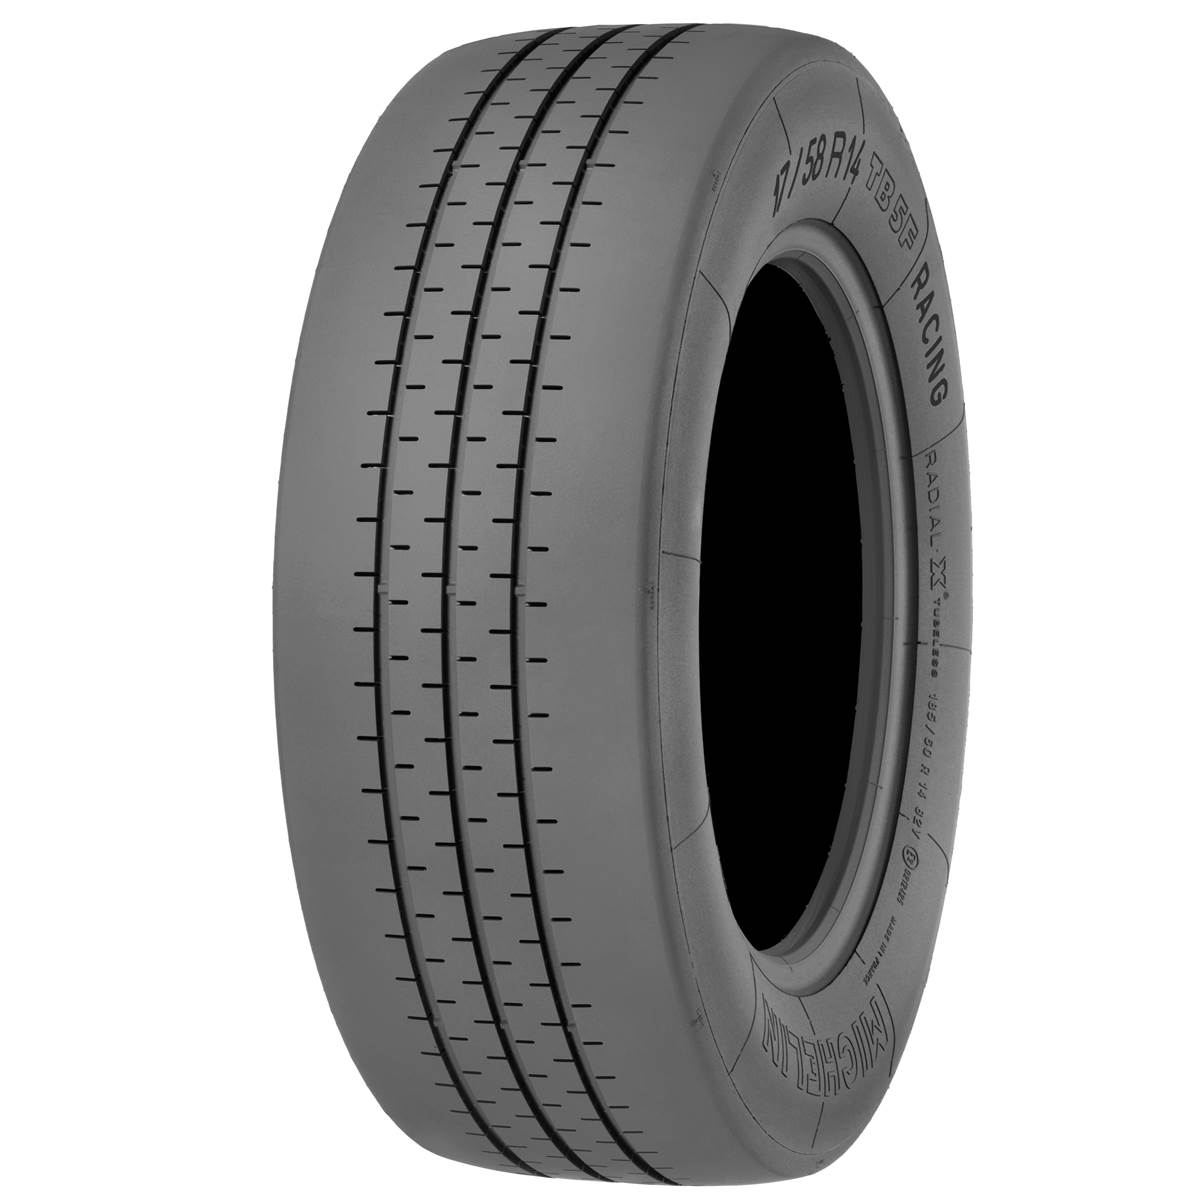 Pneu Michelin Collection 270/45R15 86W Tb5 R